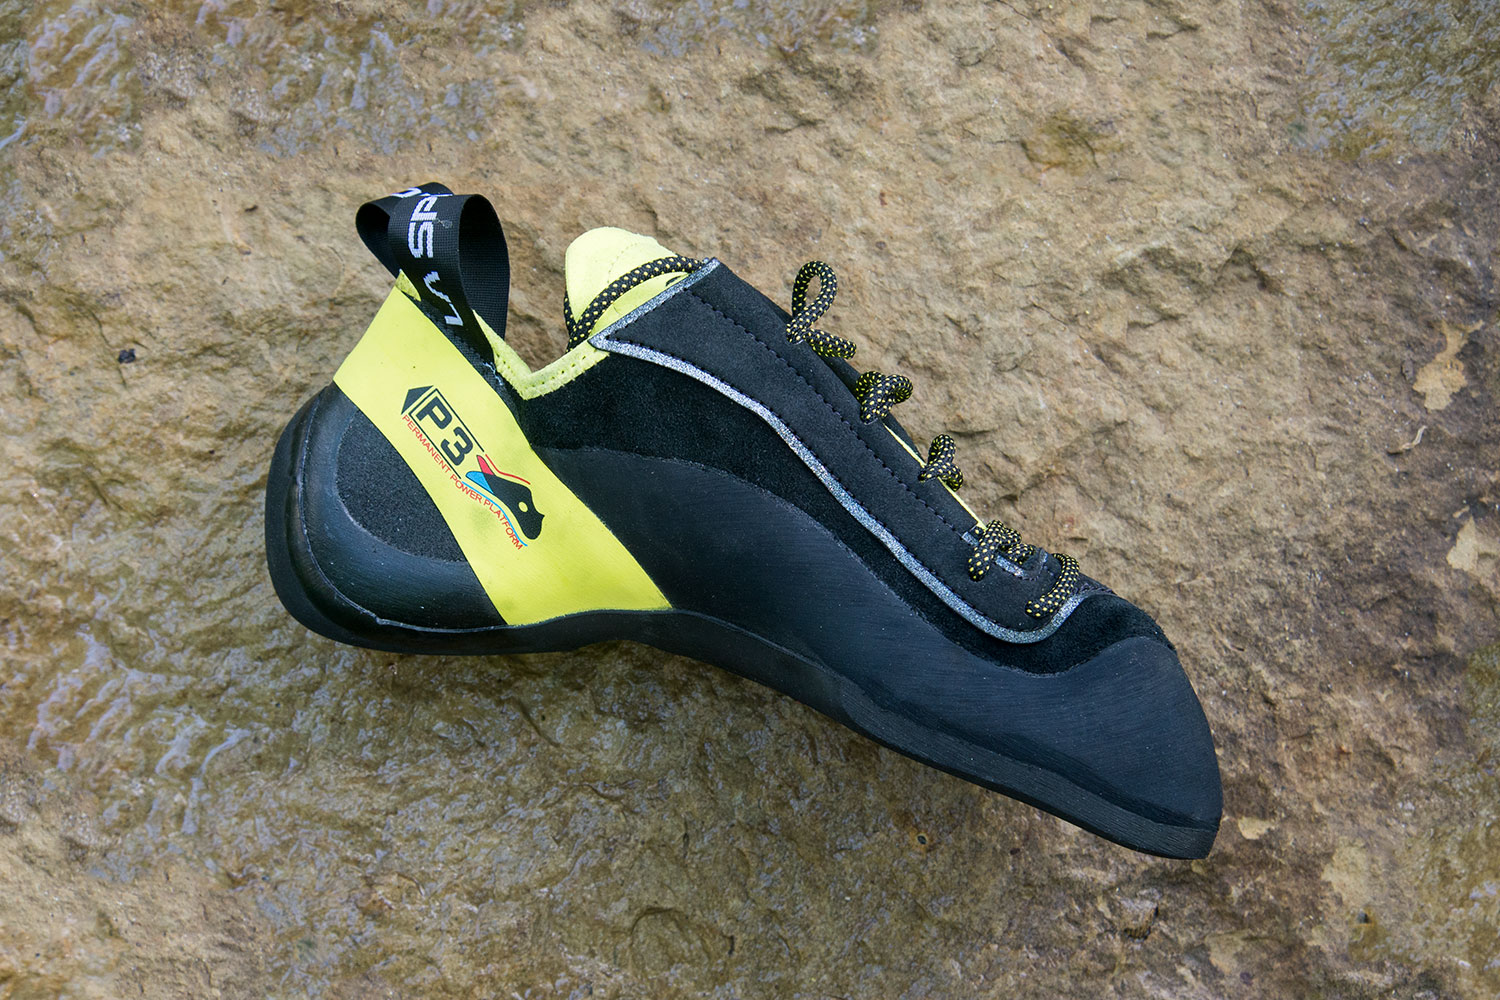 Miura Climbing Shoes Review